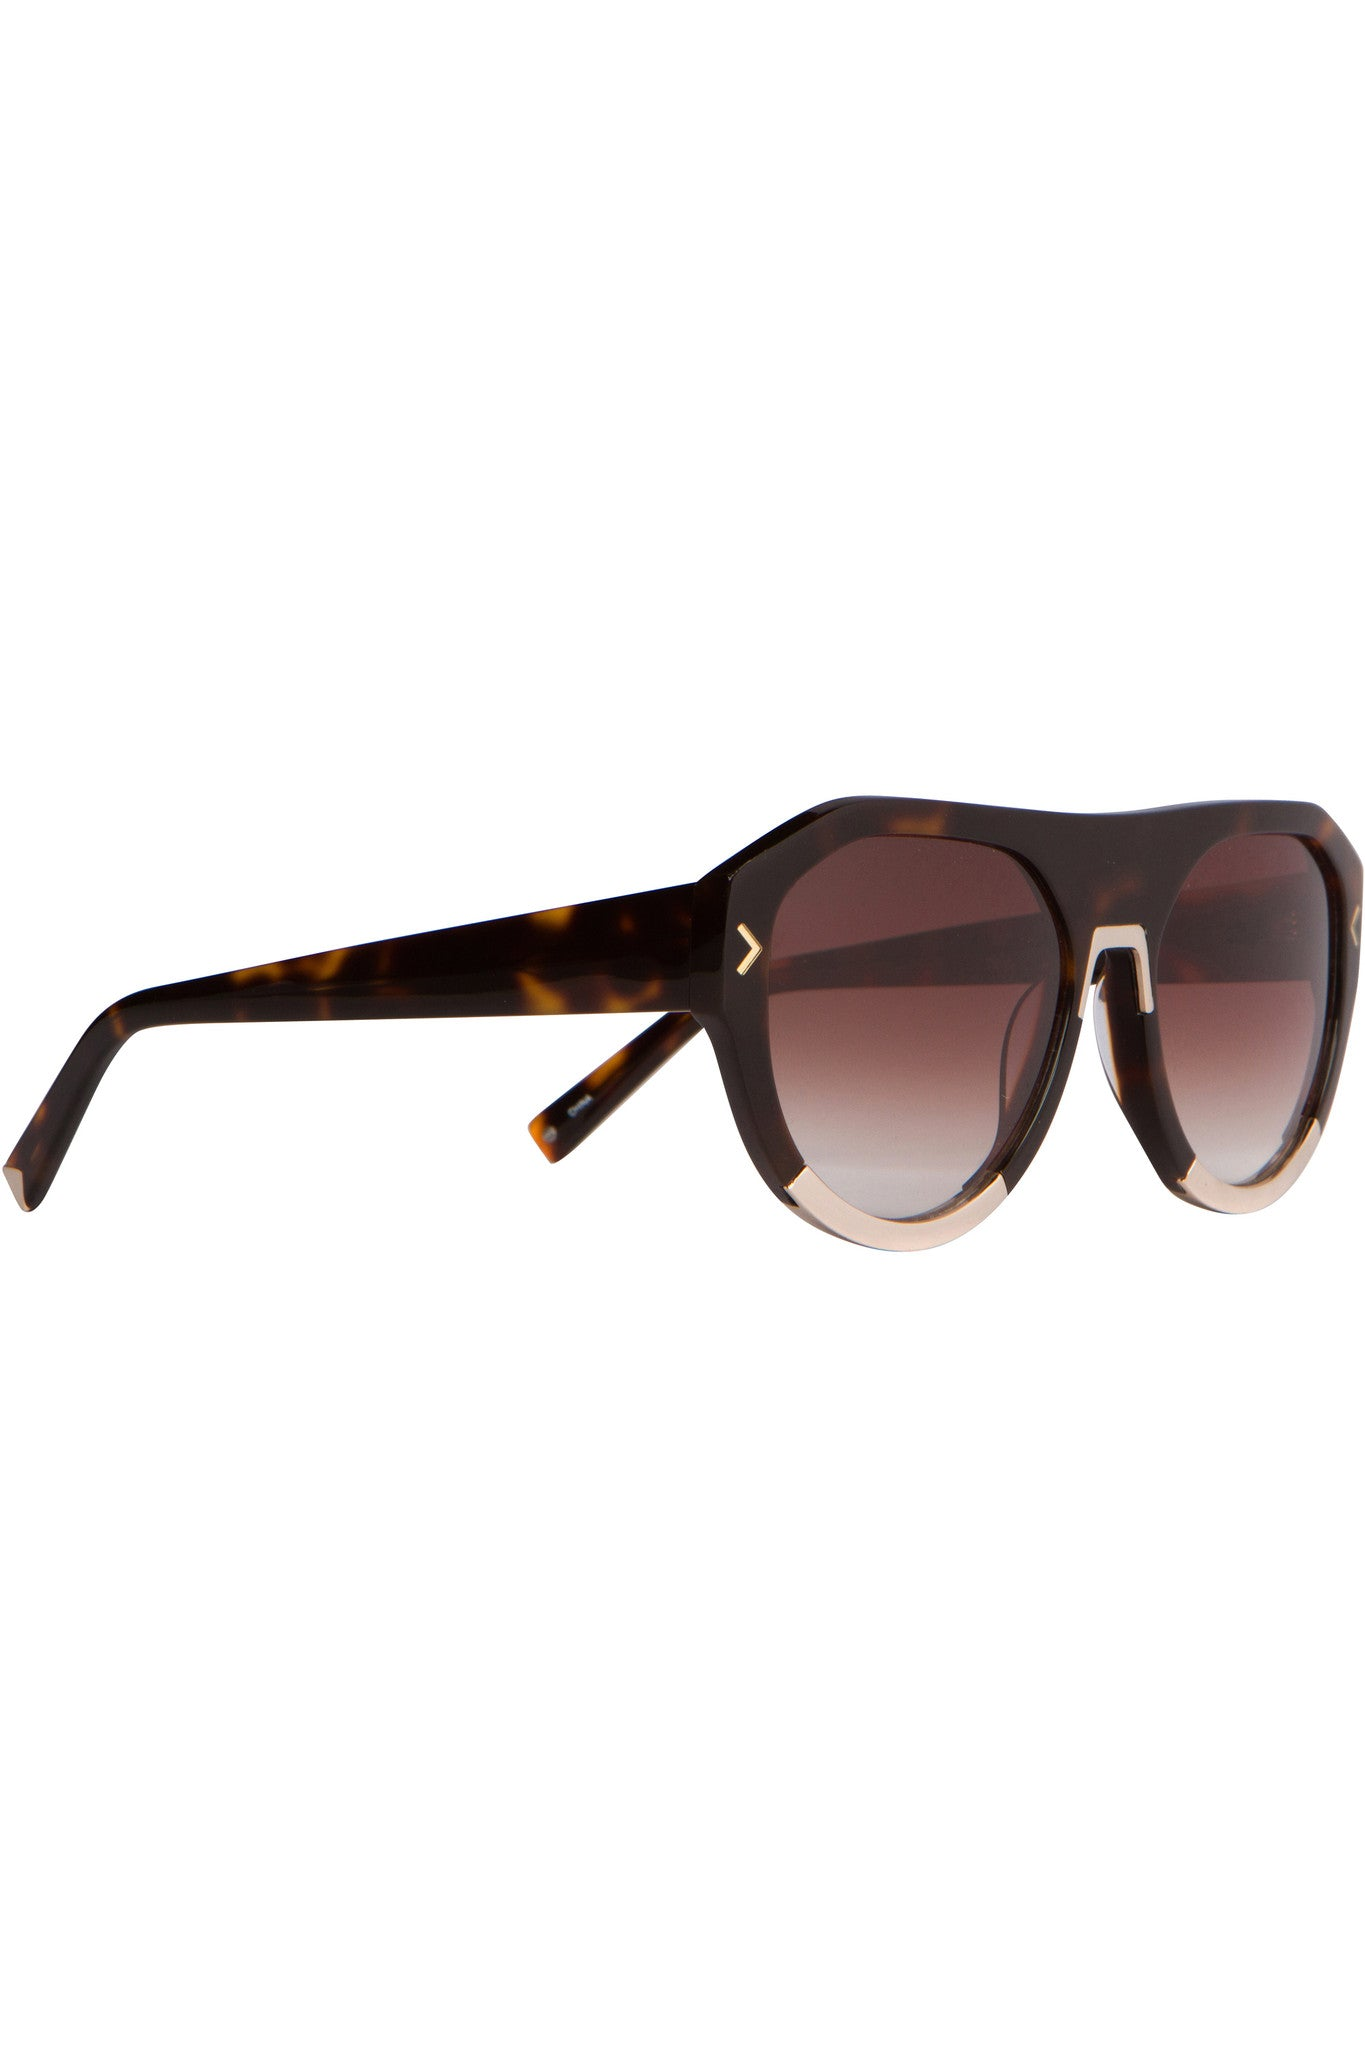 MERCY DARK DEMI AND SHINY GOLD METAL SUNGLASSES EYEWEAR by KENDALL + KYLIE